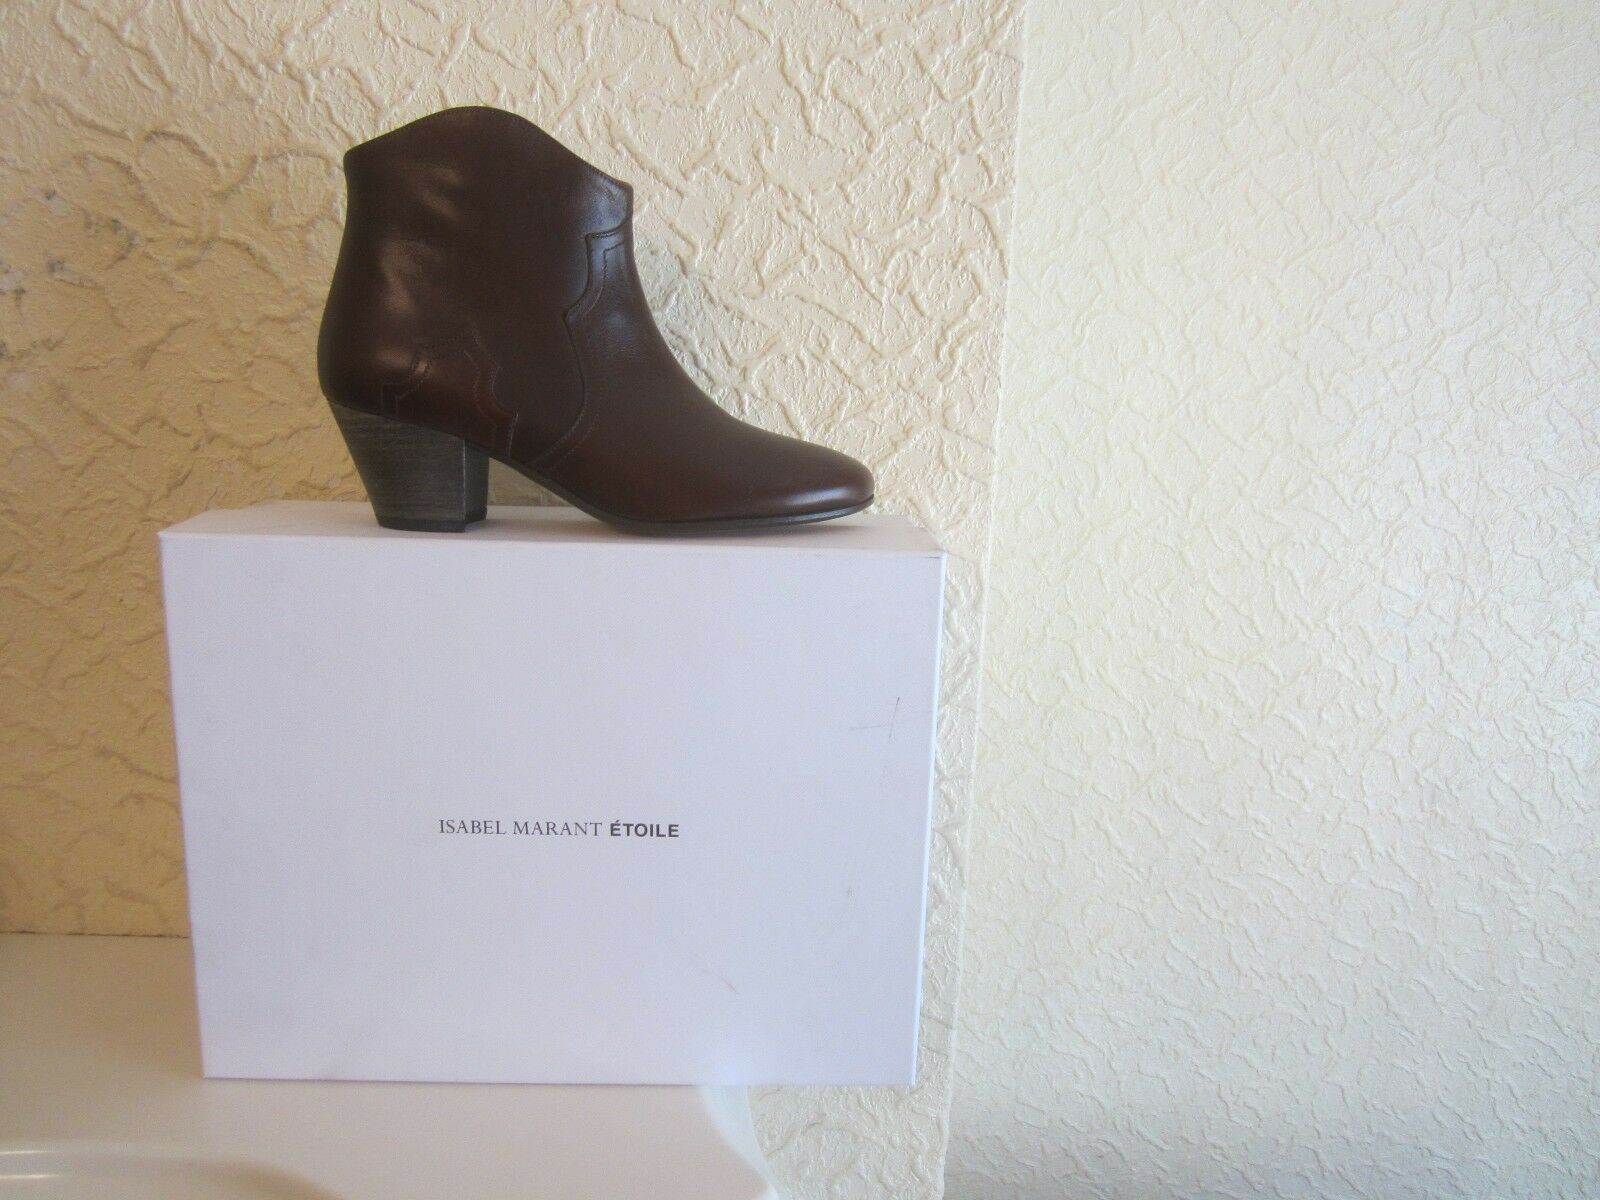 Isabel Marant Etoile Dicker Leather Ankle Boots Boots Boots size 36 896a4b